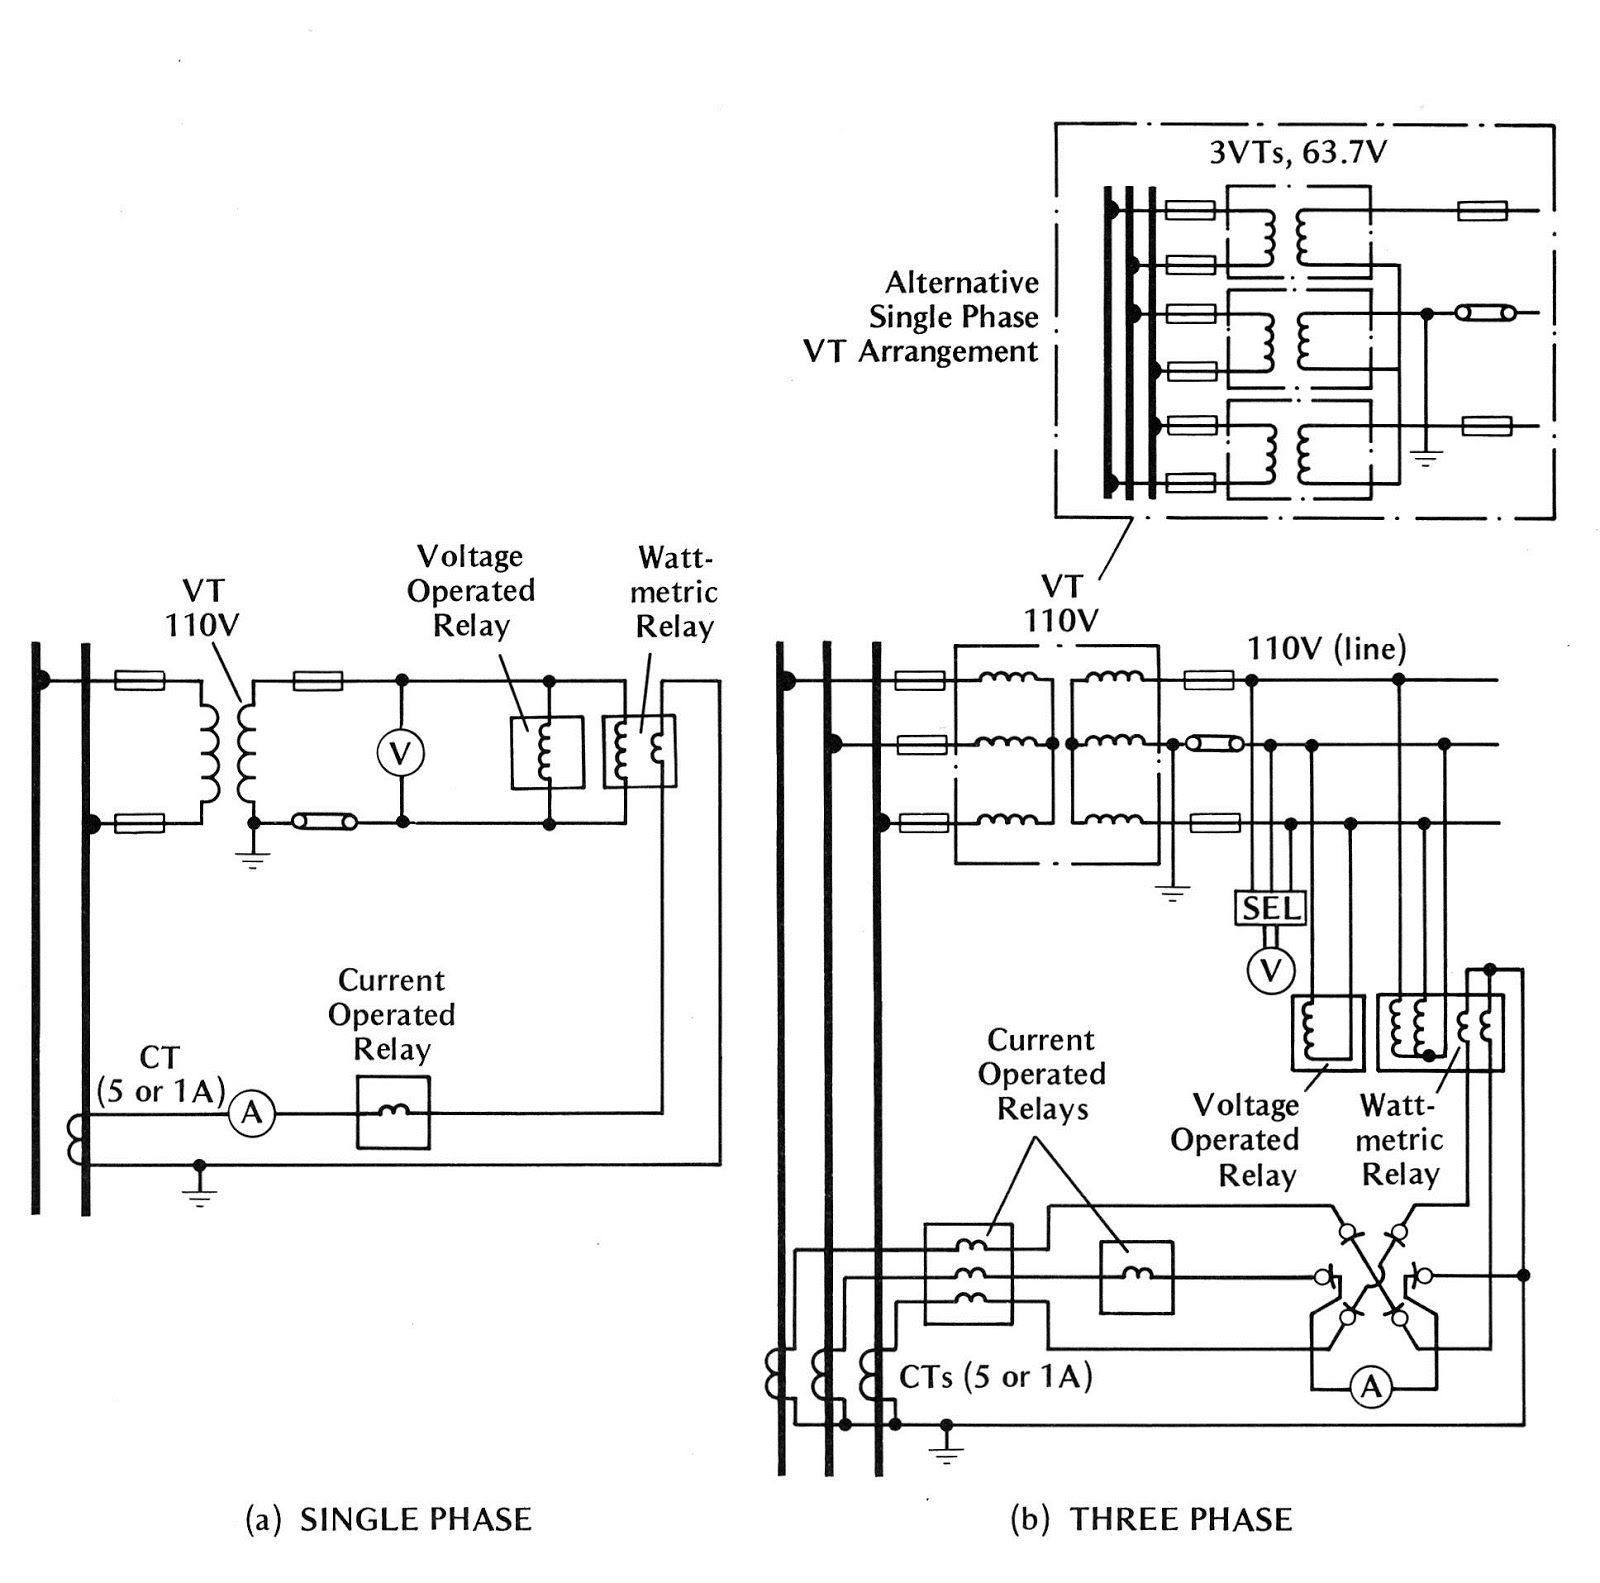 Figure+4.2+INDIRECT+MEASUREMENT+WITH+INSTRUMENT+TRANSFORMERS mgm transformer wiring diagram mgm transformer catalog \u2022 free mgm transformer wiring diagram at aneh.co